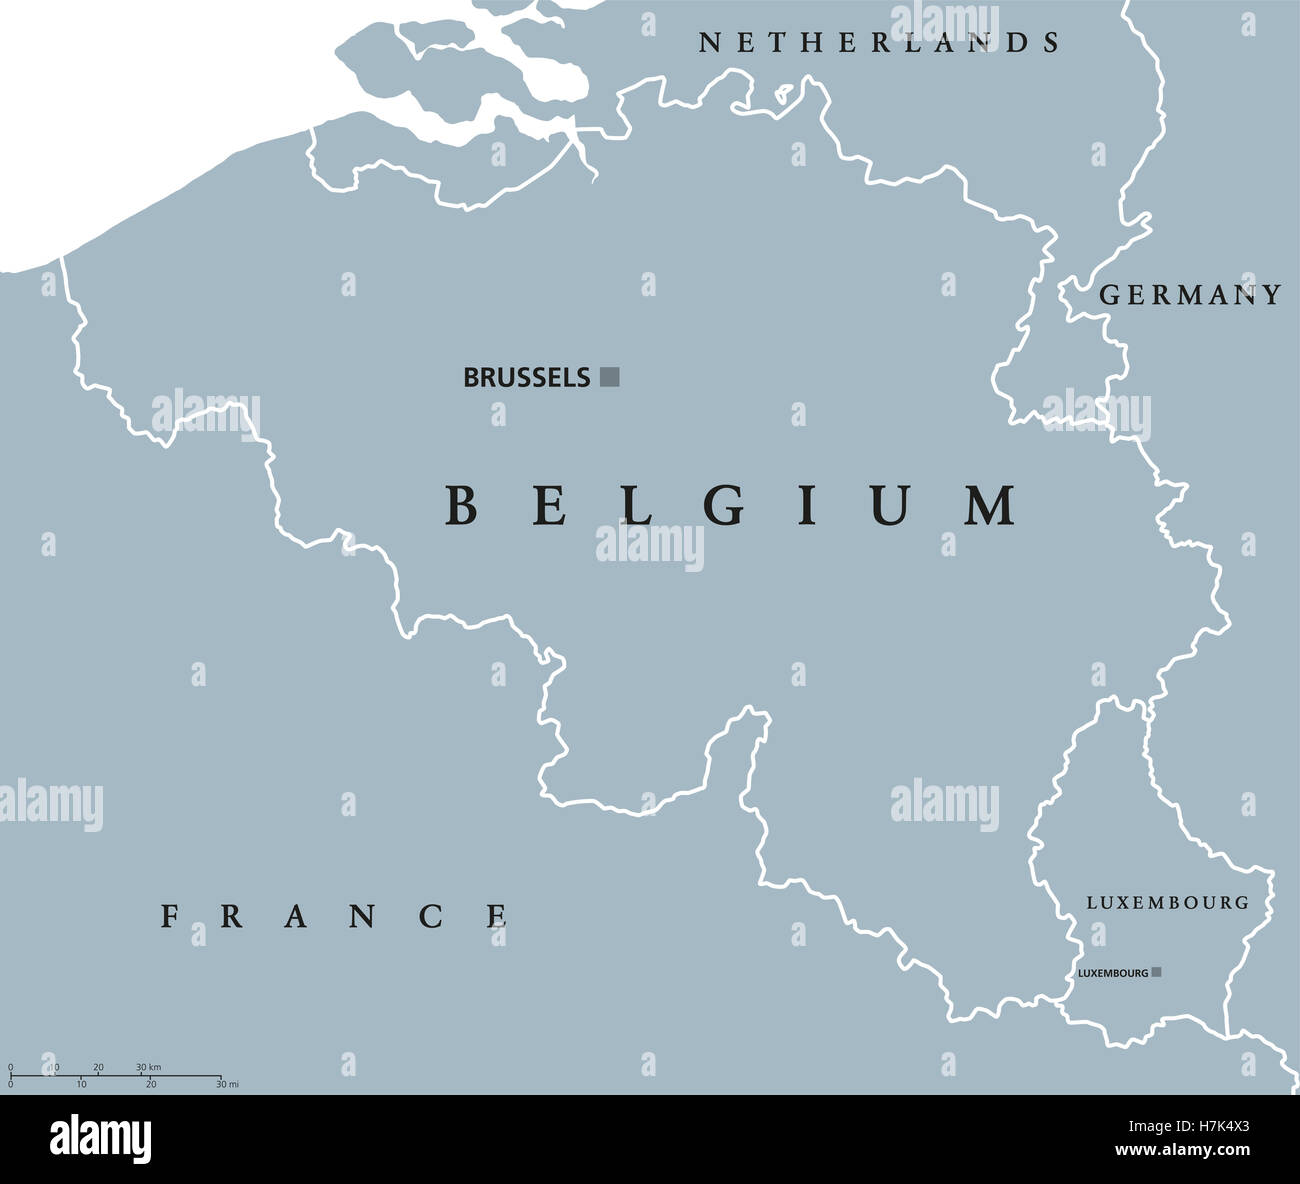 belgium and luxembourg political map with capitals brussels and luxembourg with national borders and neighbor